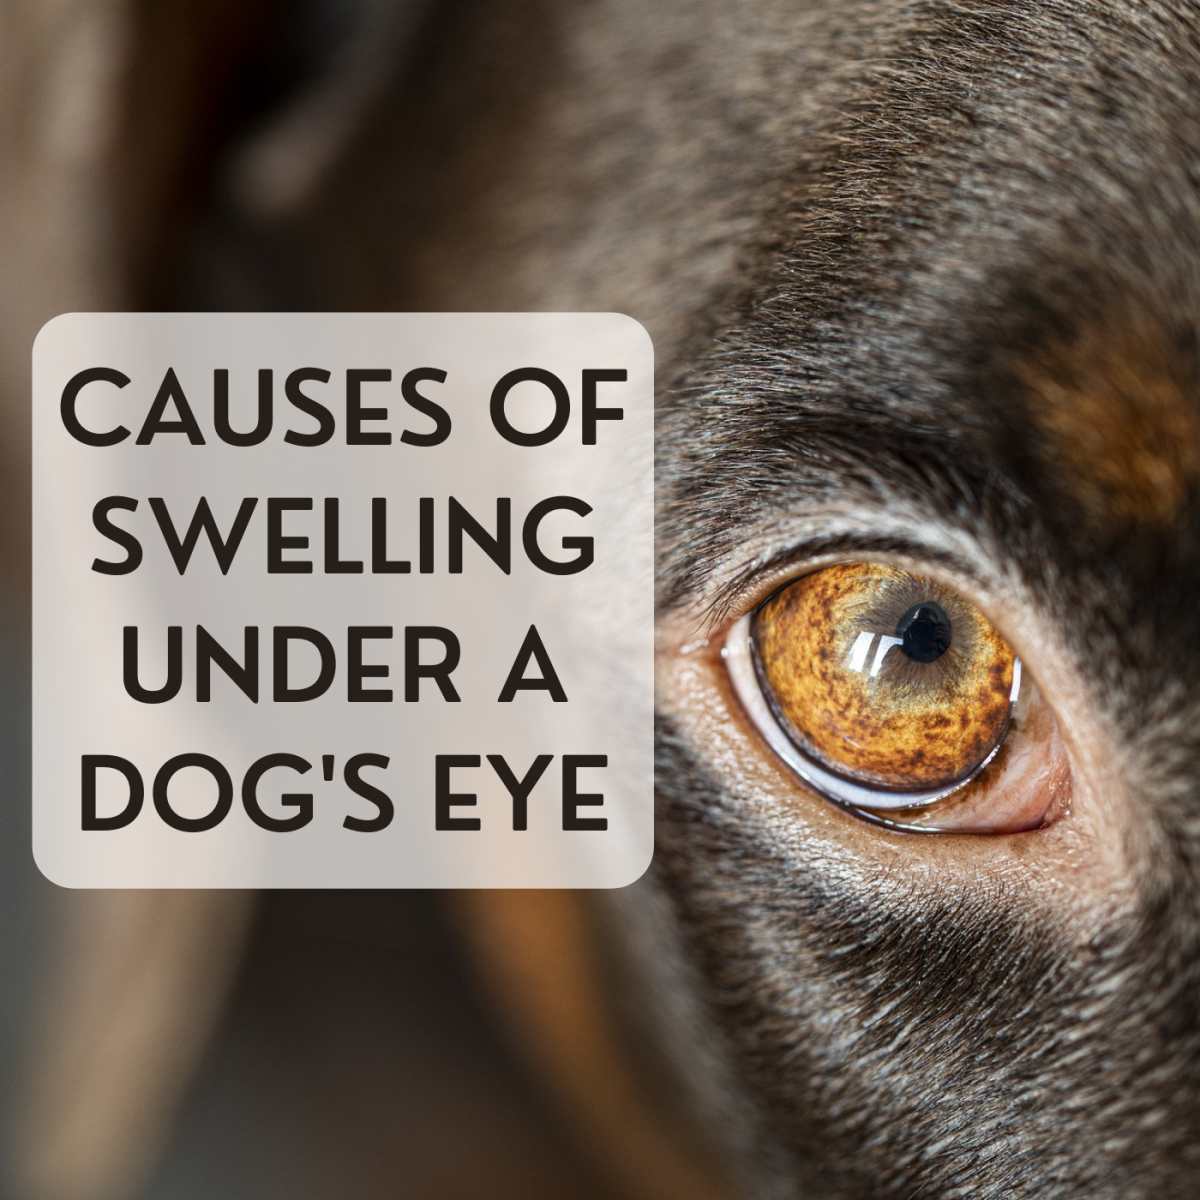 How a Dog's Carnassial Tooth May Cause Swelling Under the Eye